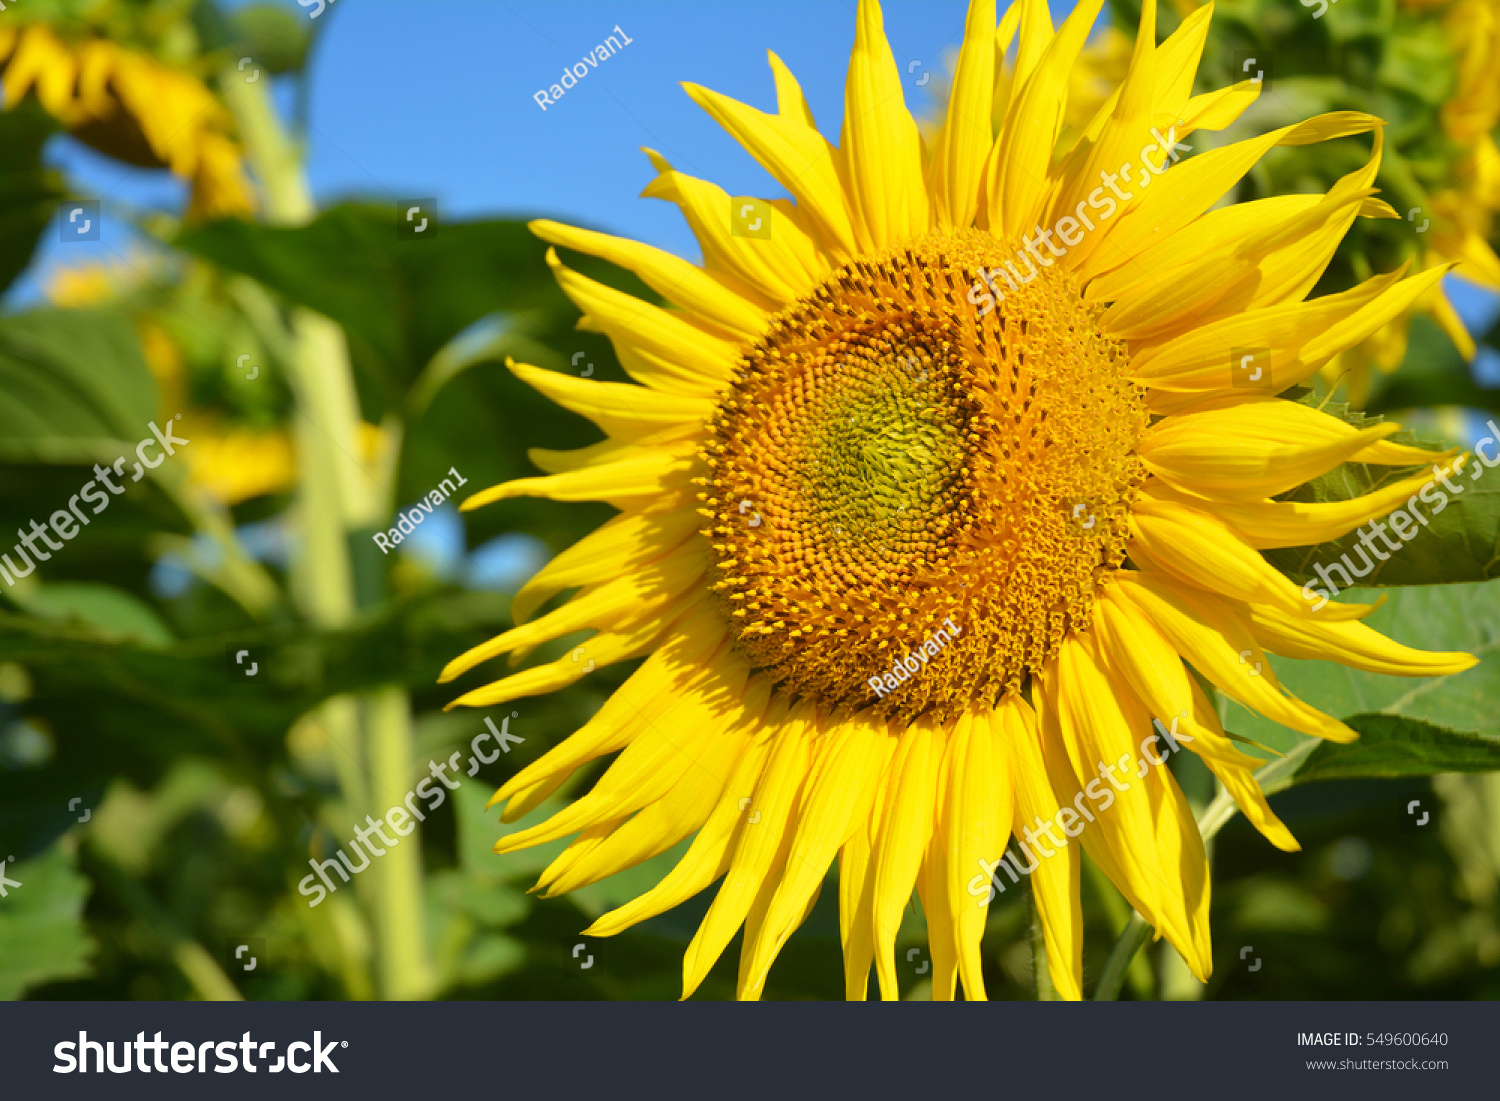 sunflowers field, sunflower photo, sunflower wallpaper. close up